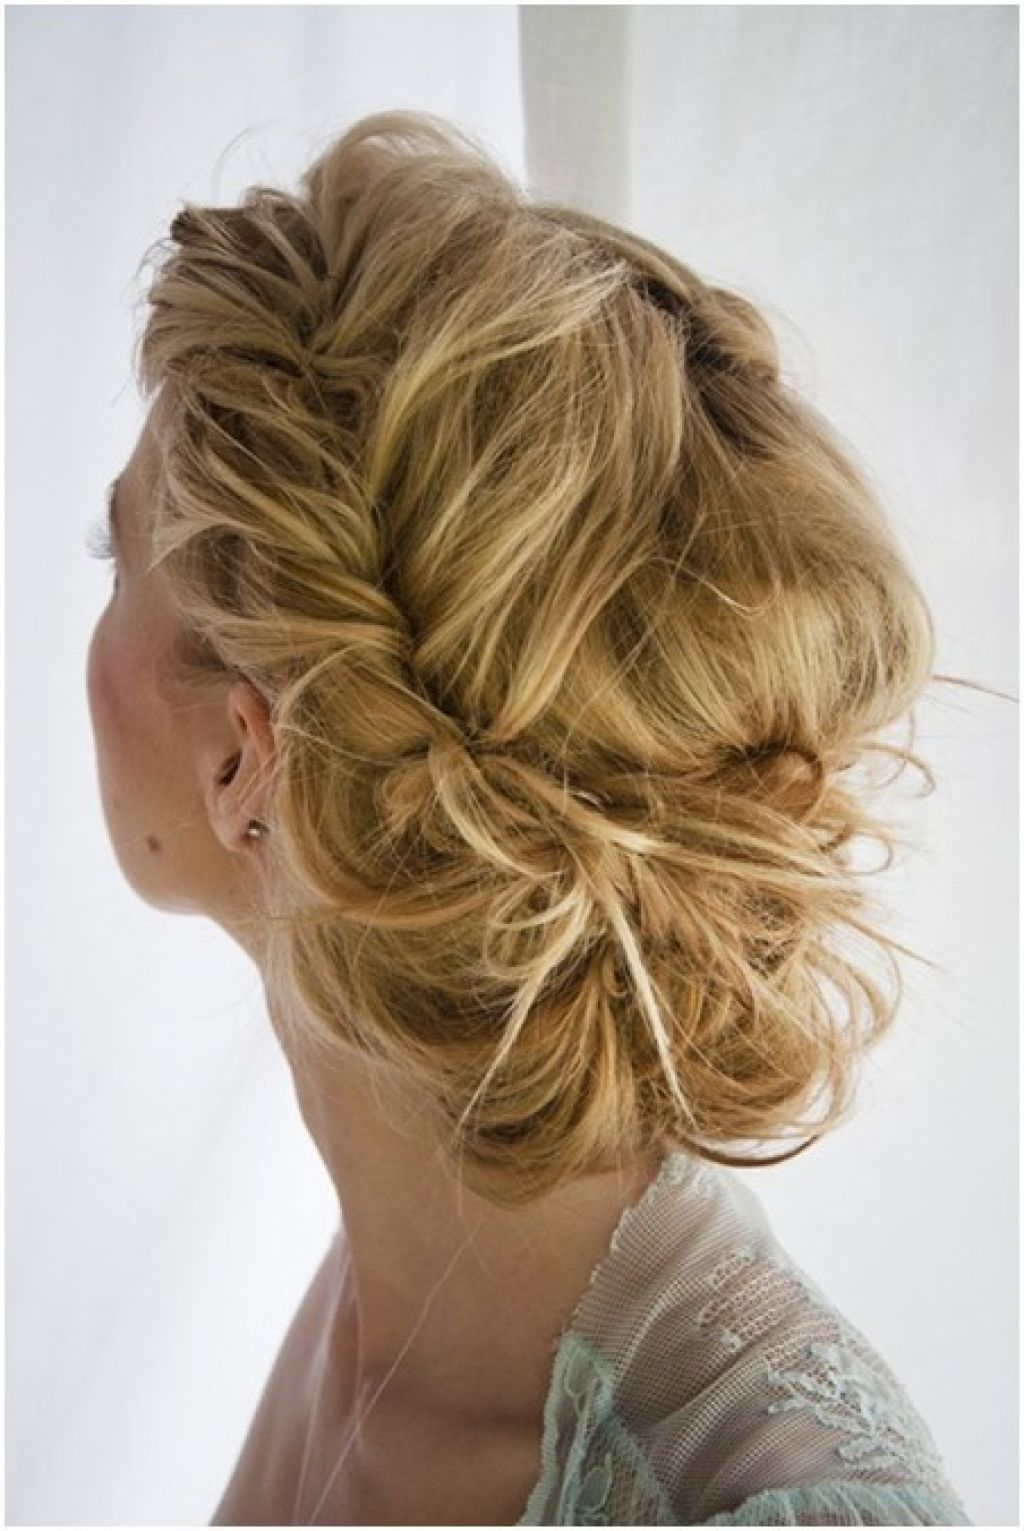 Updo hairstyles simple updo hairstyles for prom hairstyles medium